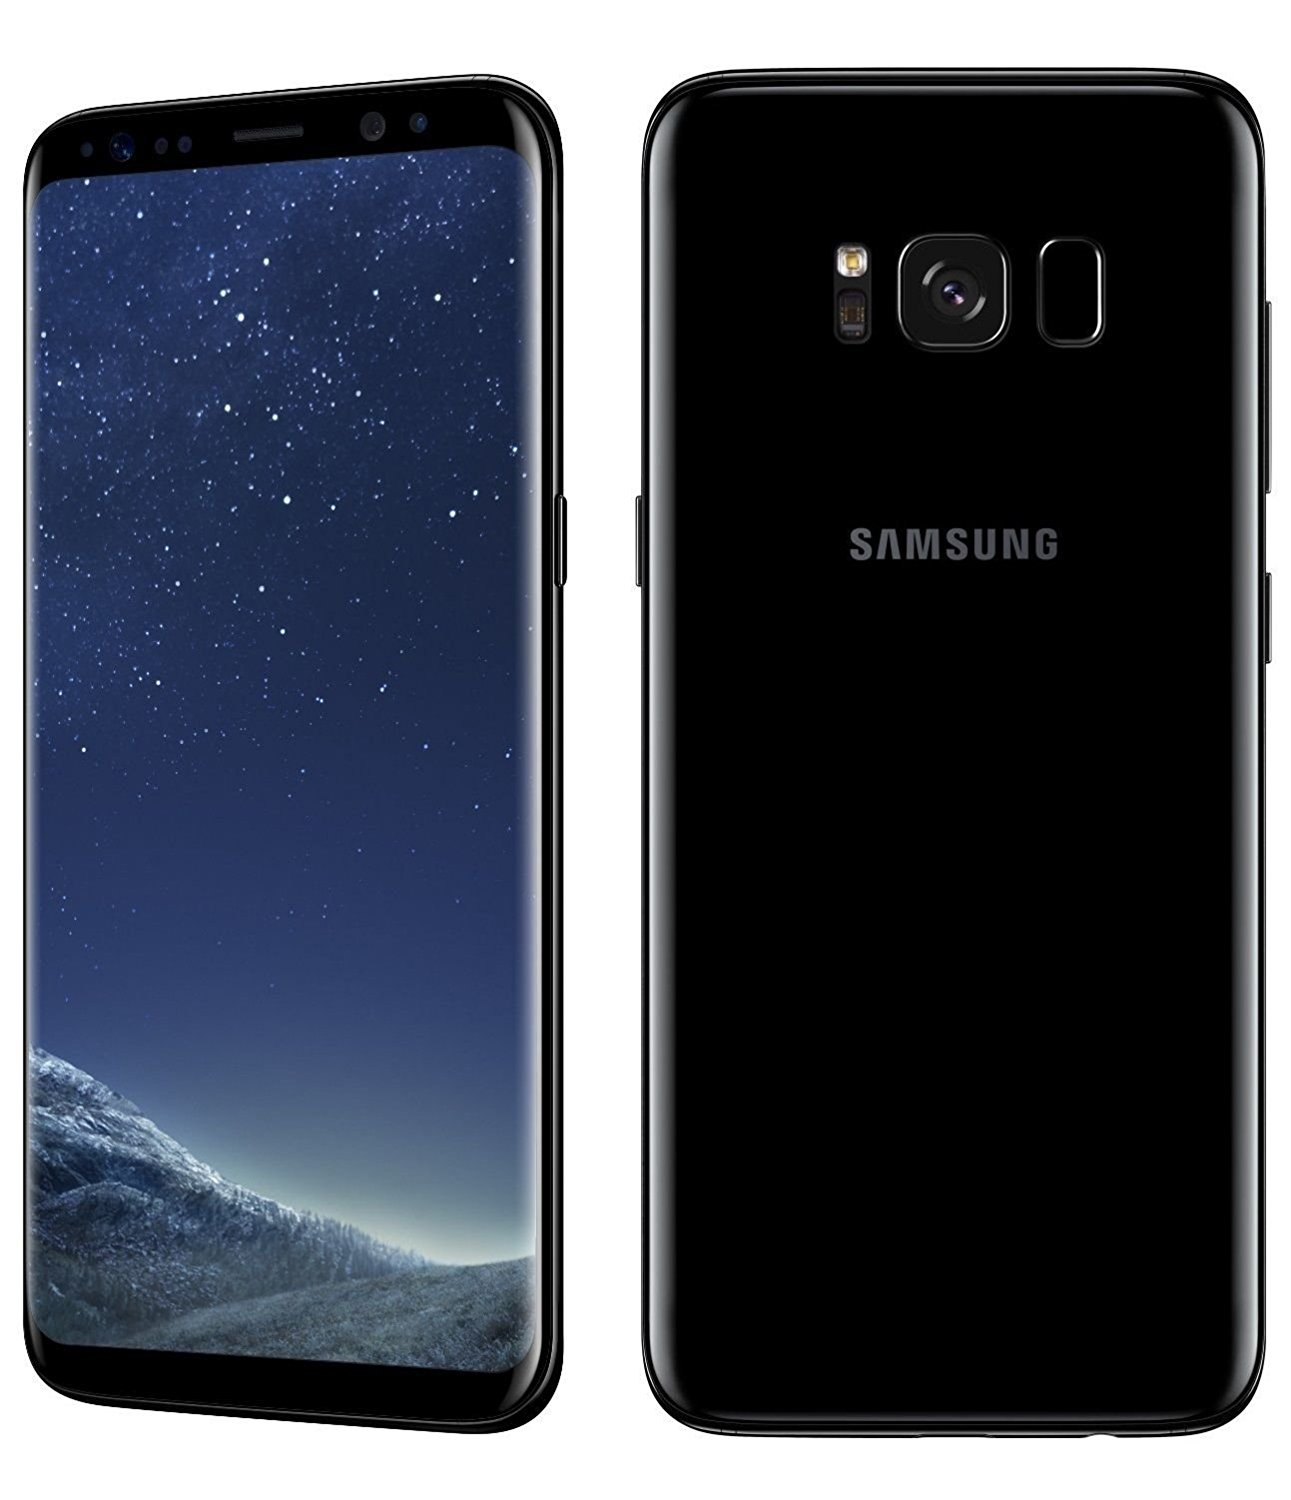 Galaxy S8 Snapdragon 835 MSM8998 2.35GHz 8コア US,